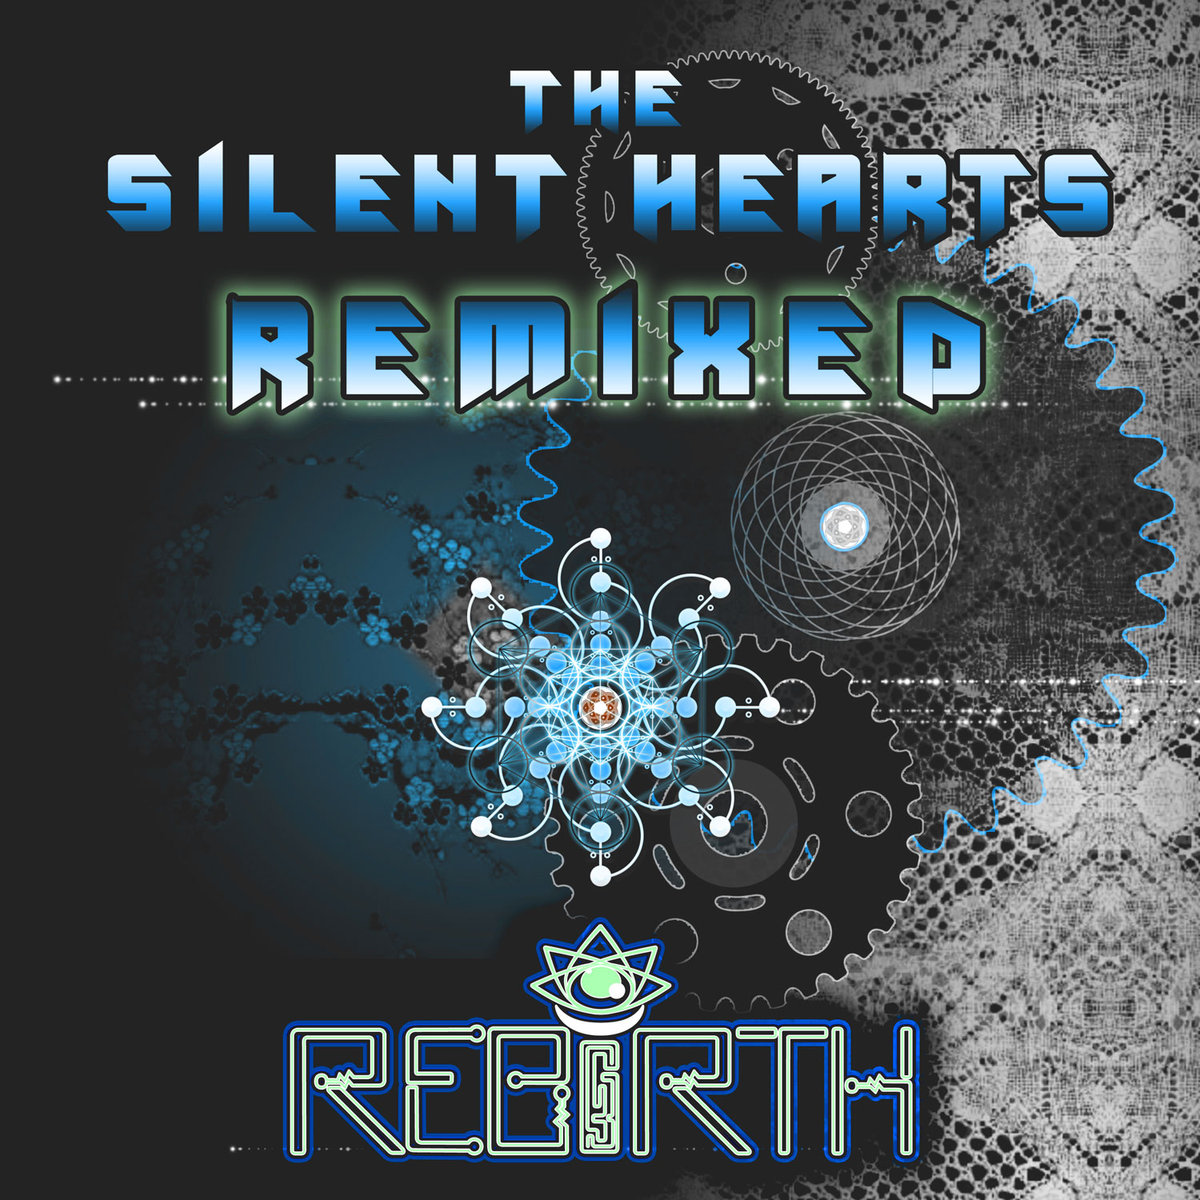 Rebirth - Huasca (Mister Boyfriend Remix) @ 'The Silent Hearts: Remixed' album (bass, electronic)